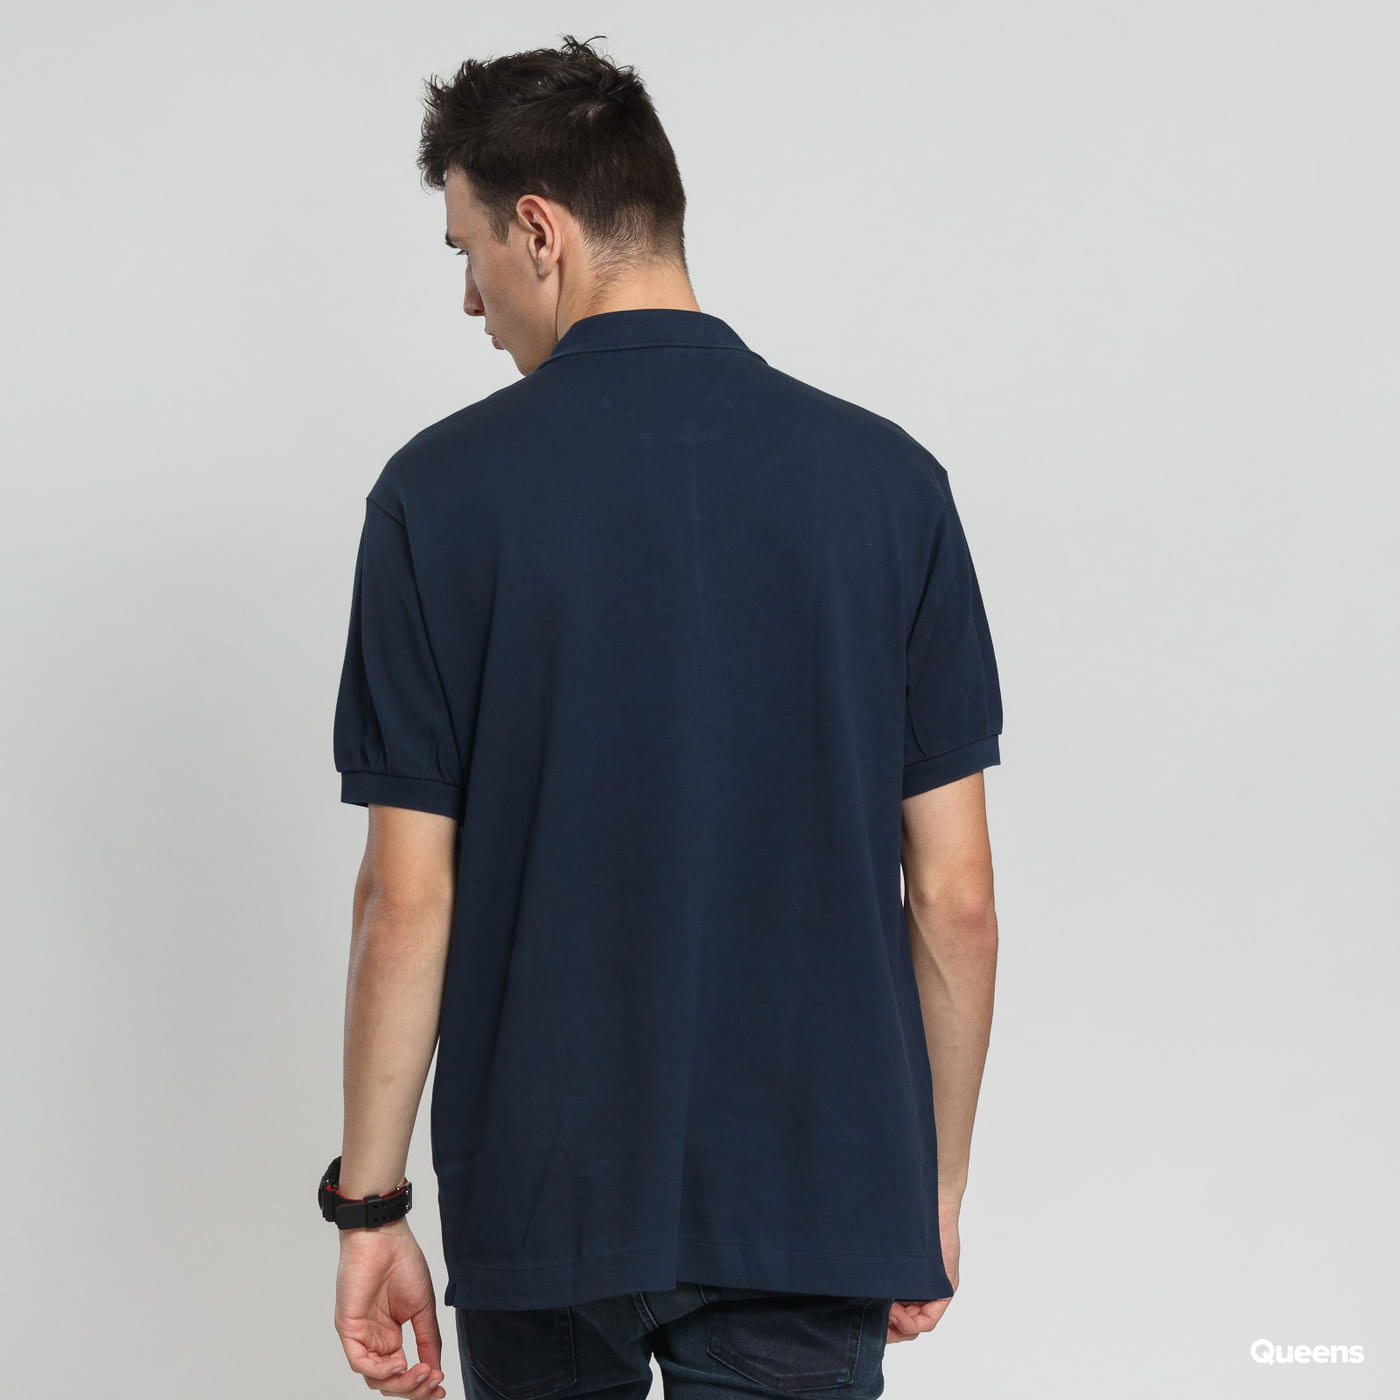 LACOSTE Men's Classic Polo navy